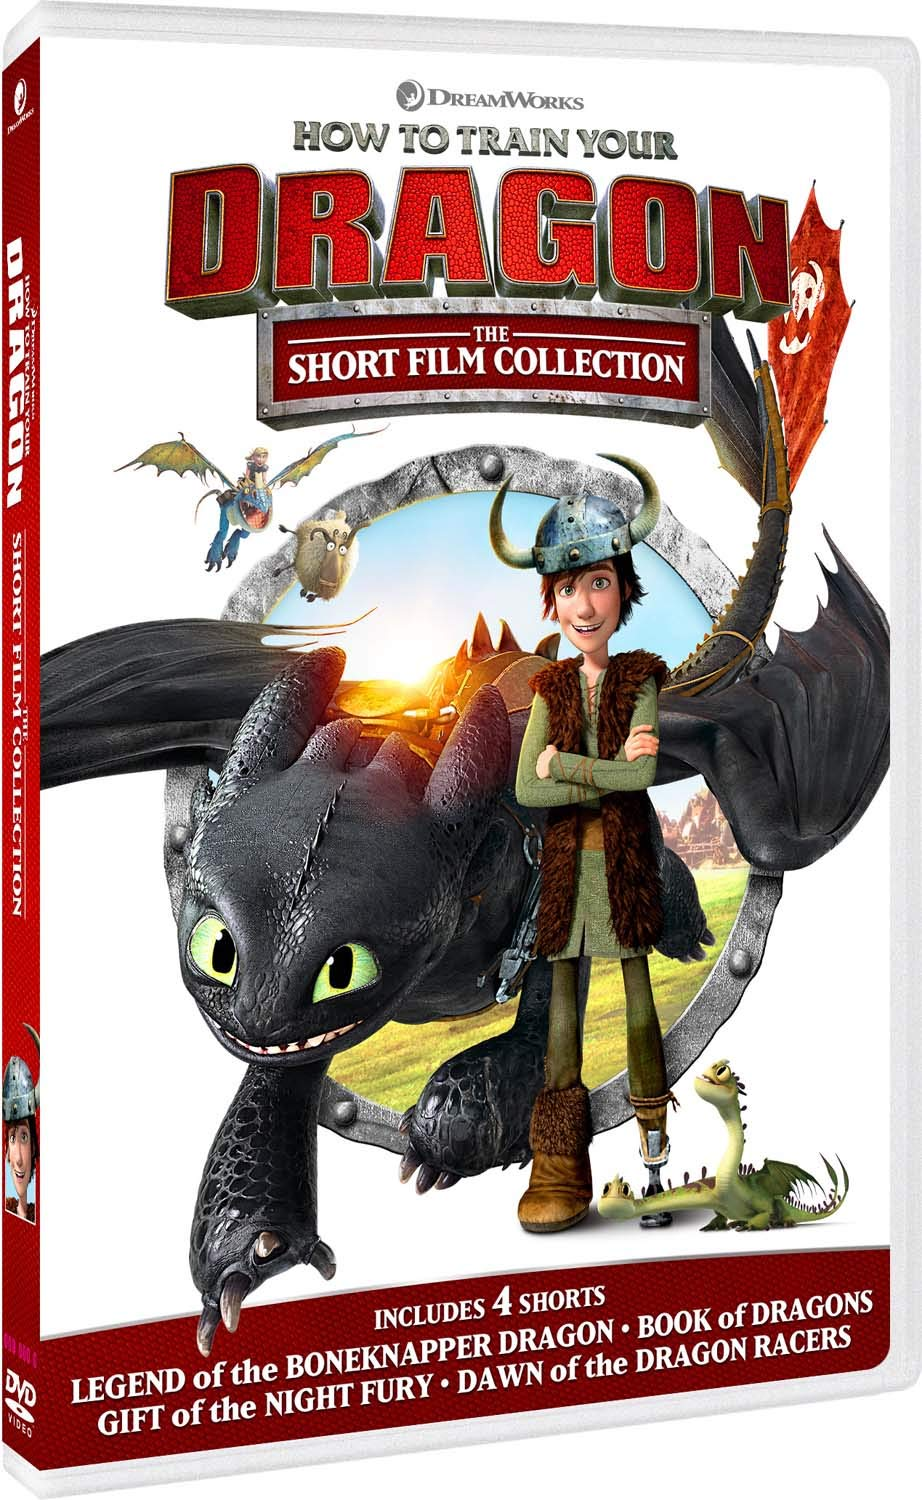 DRAGON TRAINER - MINI FILM COLLECTION (DVD)